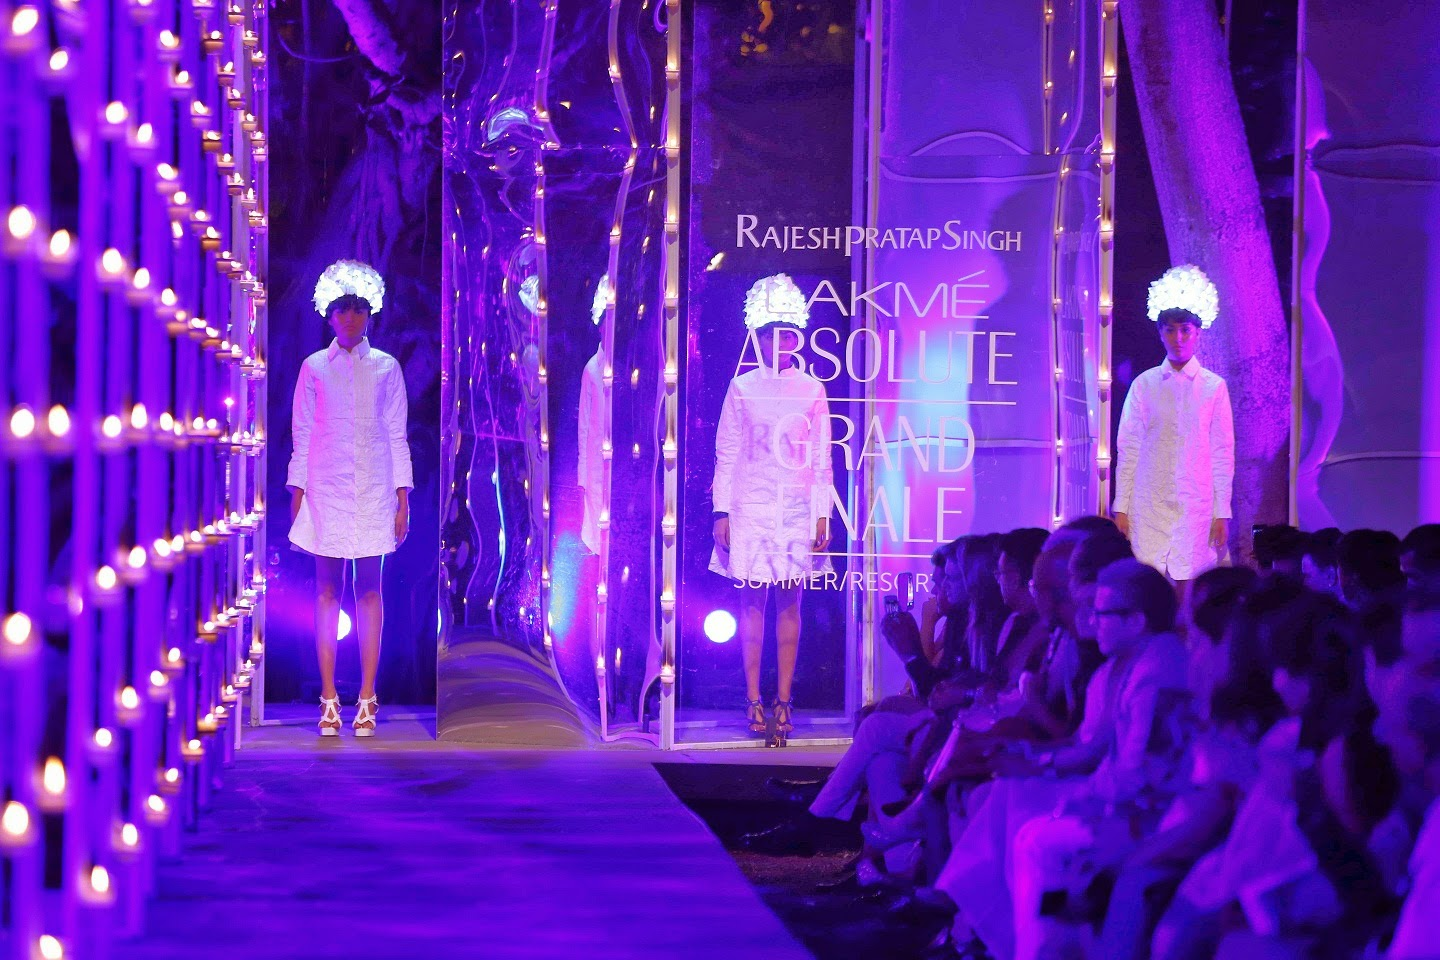 The show opened with models wearing lit helmets with transparent graphic footwear in the iconic white Rajesh Pratap Singh shirts. Soon the pastel palette emerged with skirts, coats, jackets, glittering dresses, blousons; pinafores, coat dresses as well as shimmering shifts.